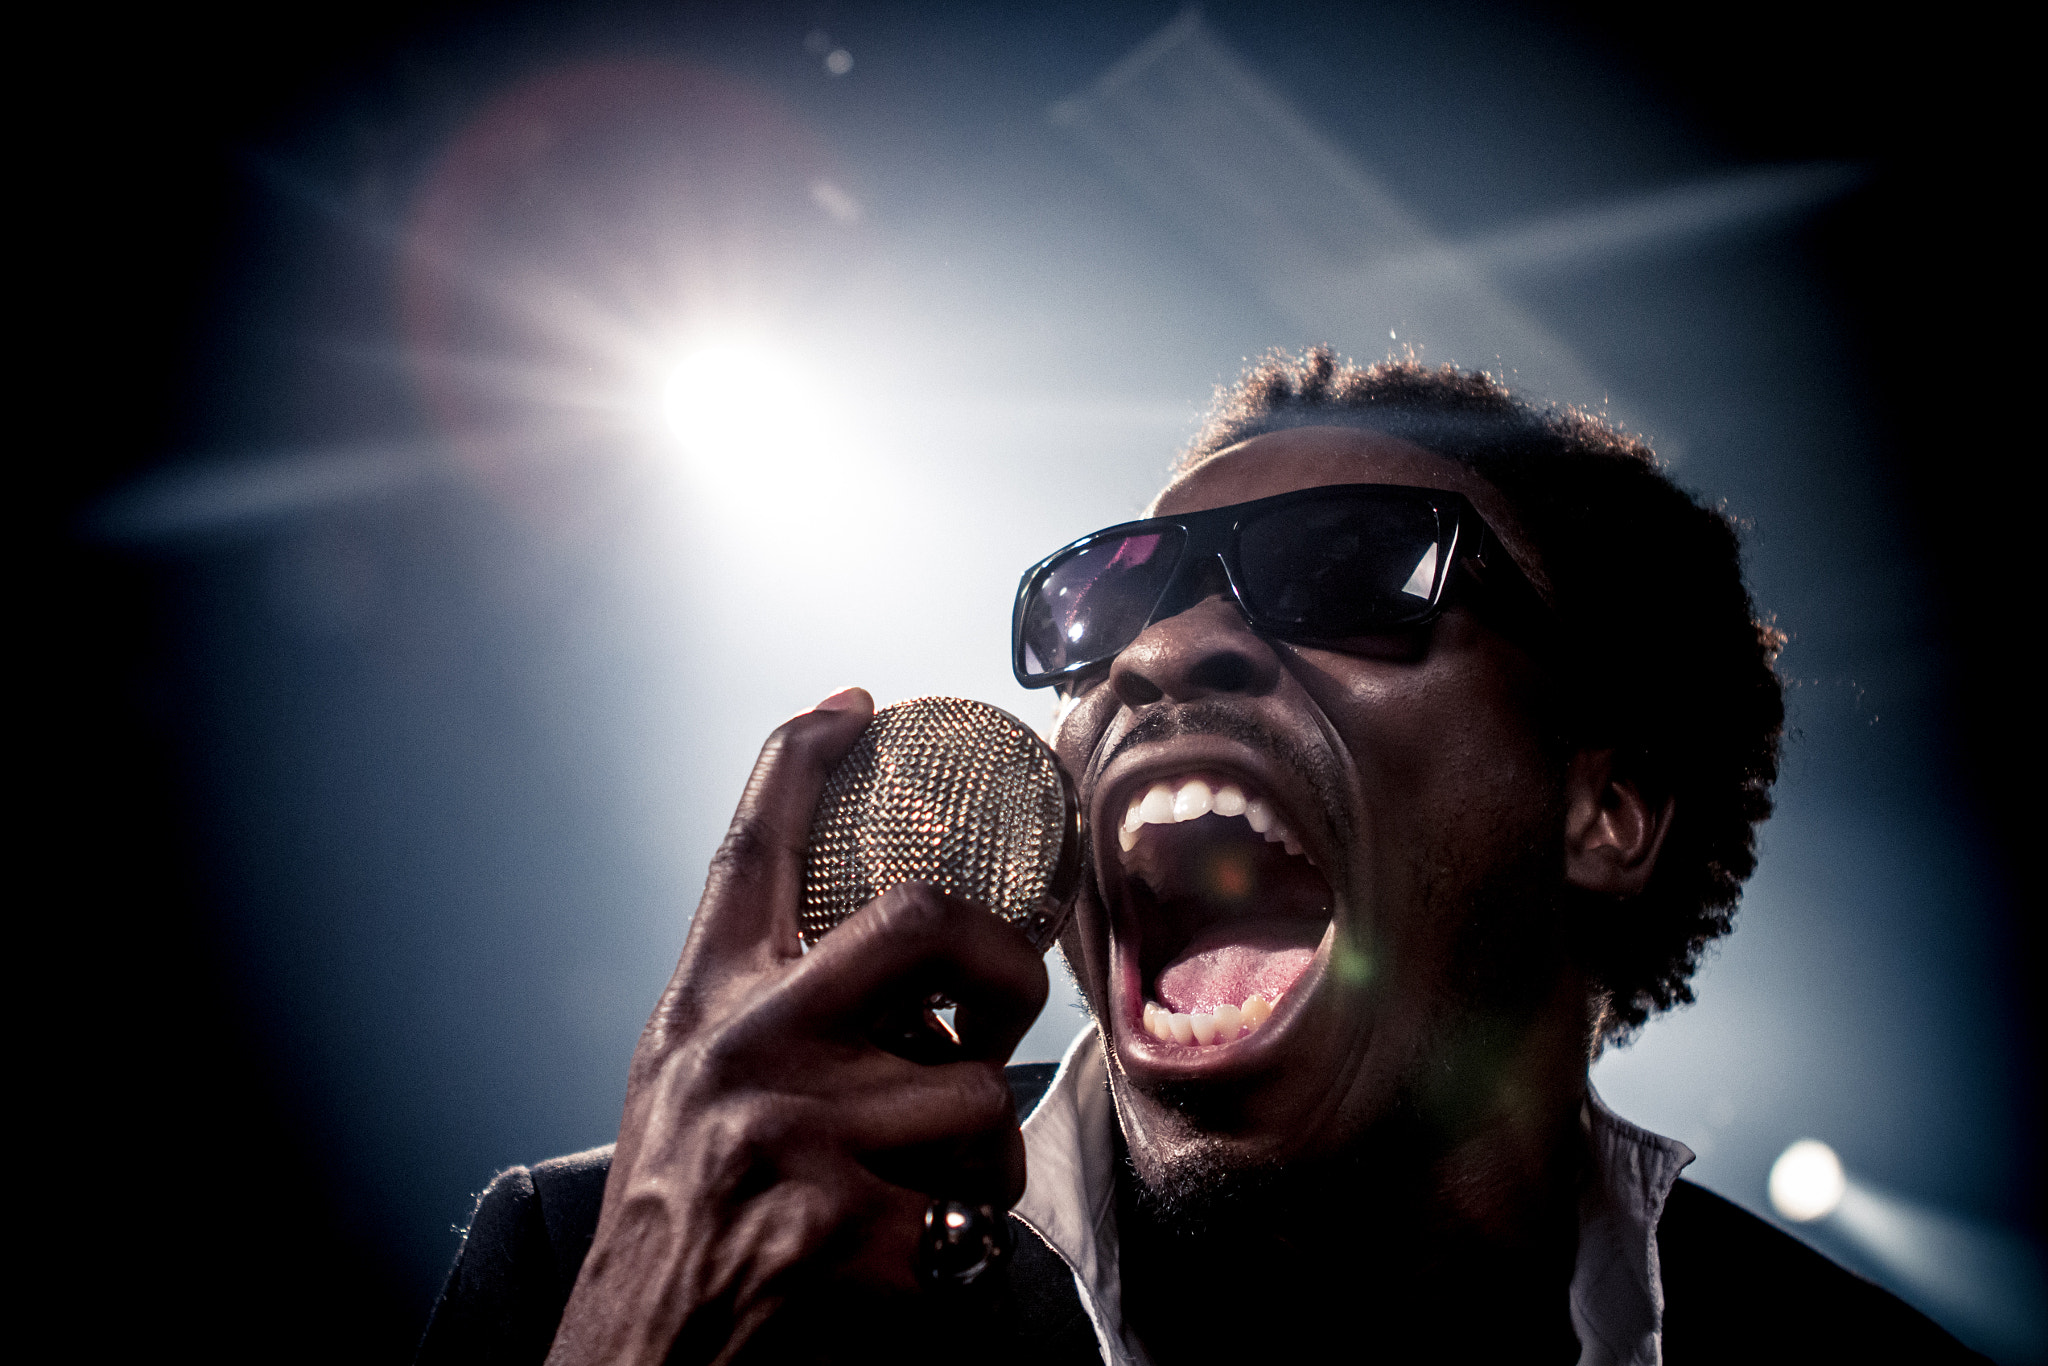 Photograph Chima on the mic by Garrett Gibbons on 500px